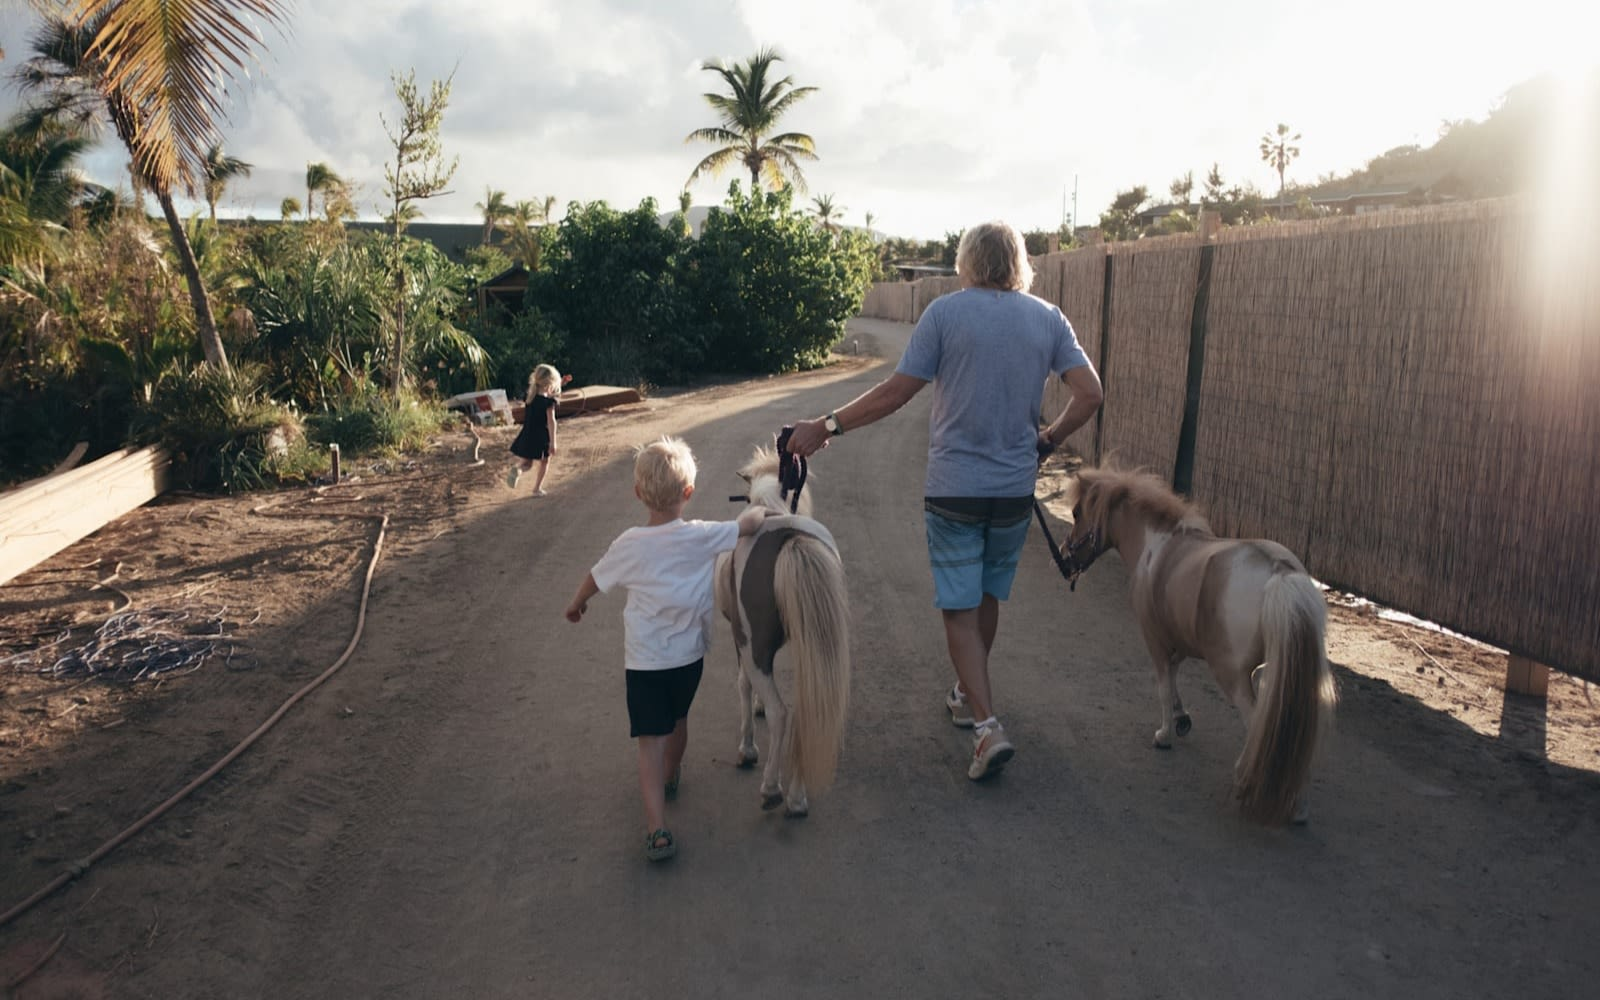 Richard Branson and grandchildren Etta and Artie walk down a road with two miniature horses.